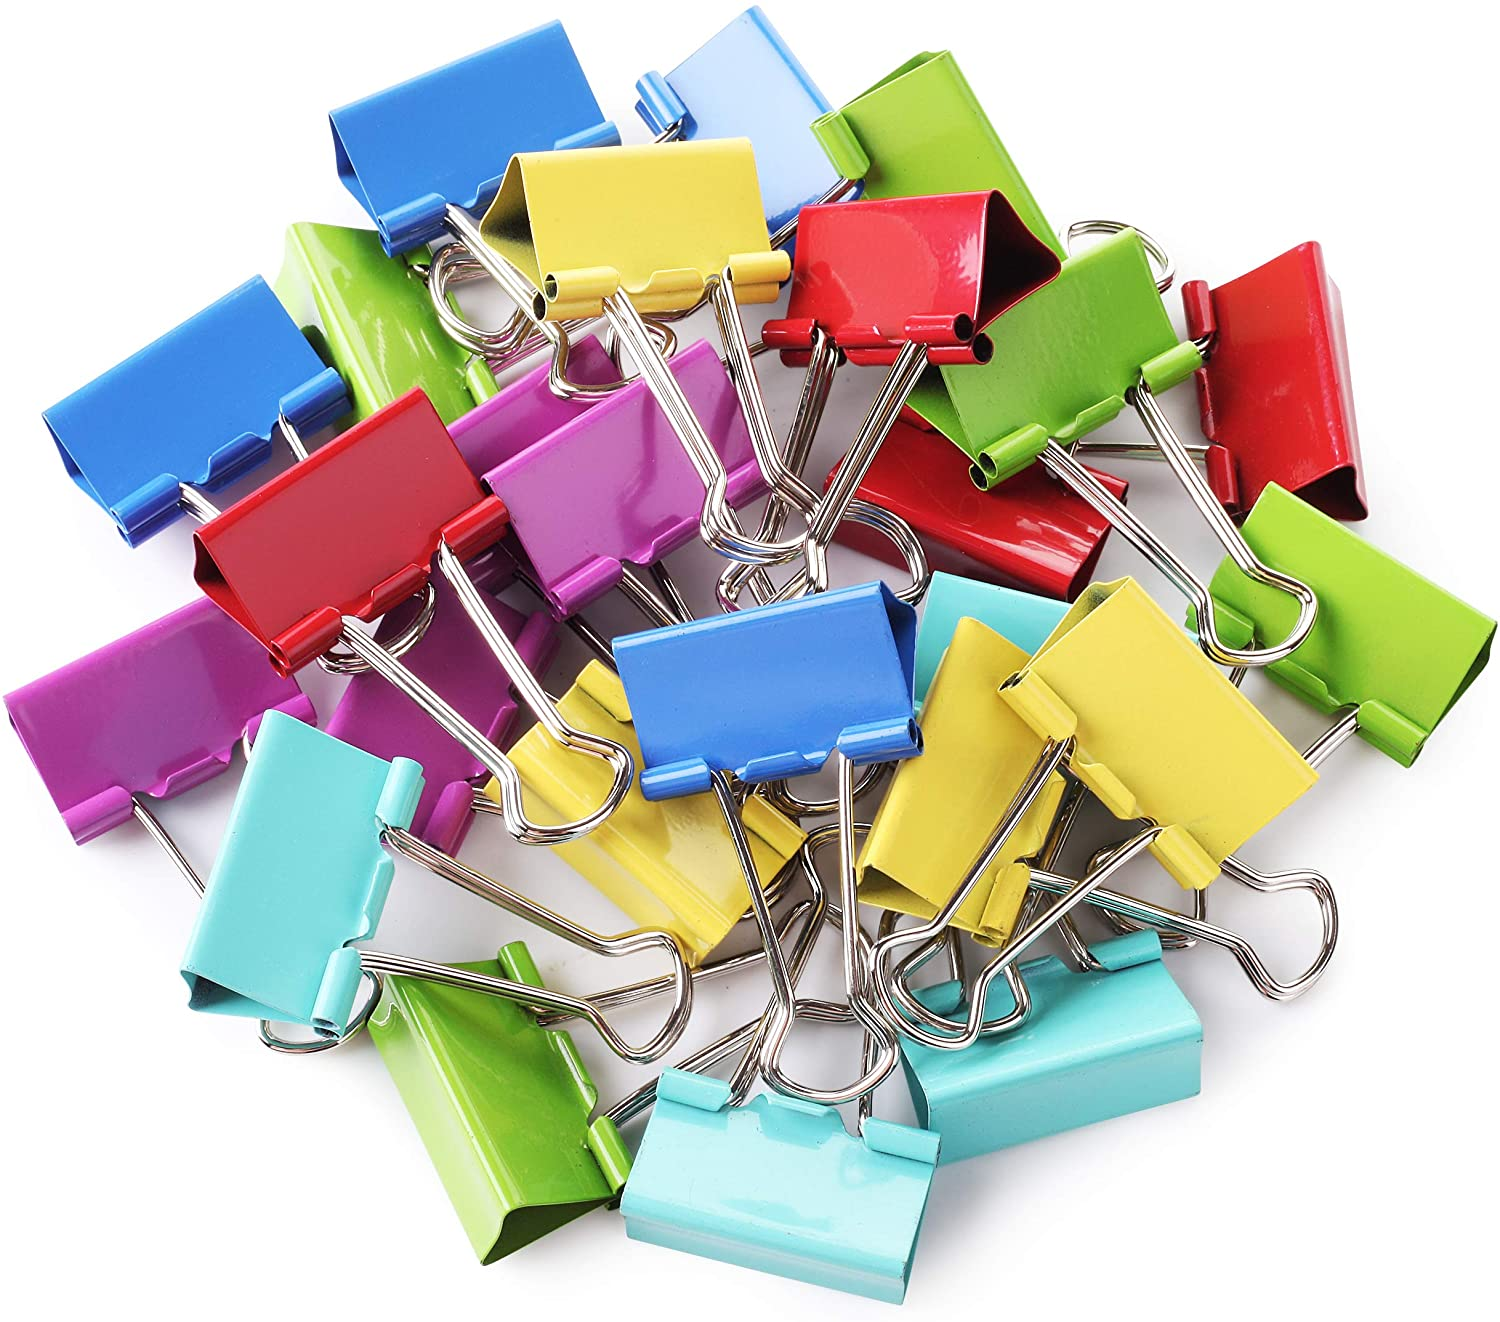 Mr. Pen- Binder Clips, Colored Binder Clips, 1.25 inch, 25 Pack, Medium, Color Binder Clips, Clips, Paper Clips, Binder Clip, Clips for Paperwork, Binder Clips Medium Size, Office Clips